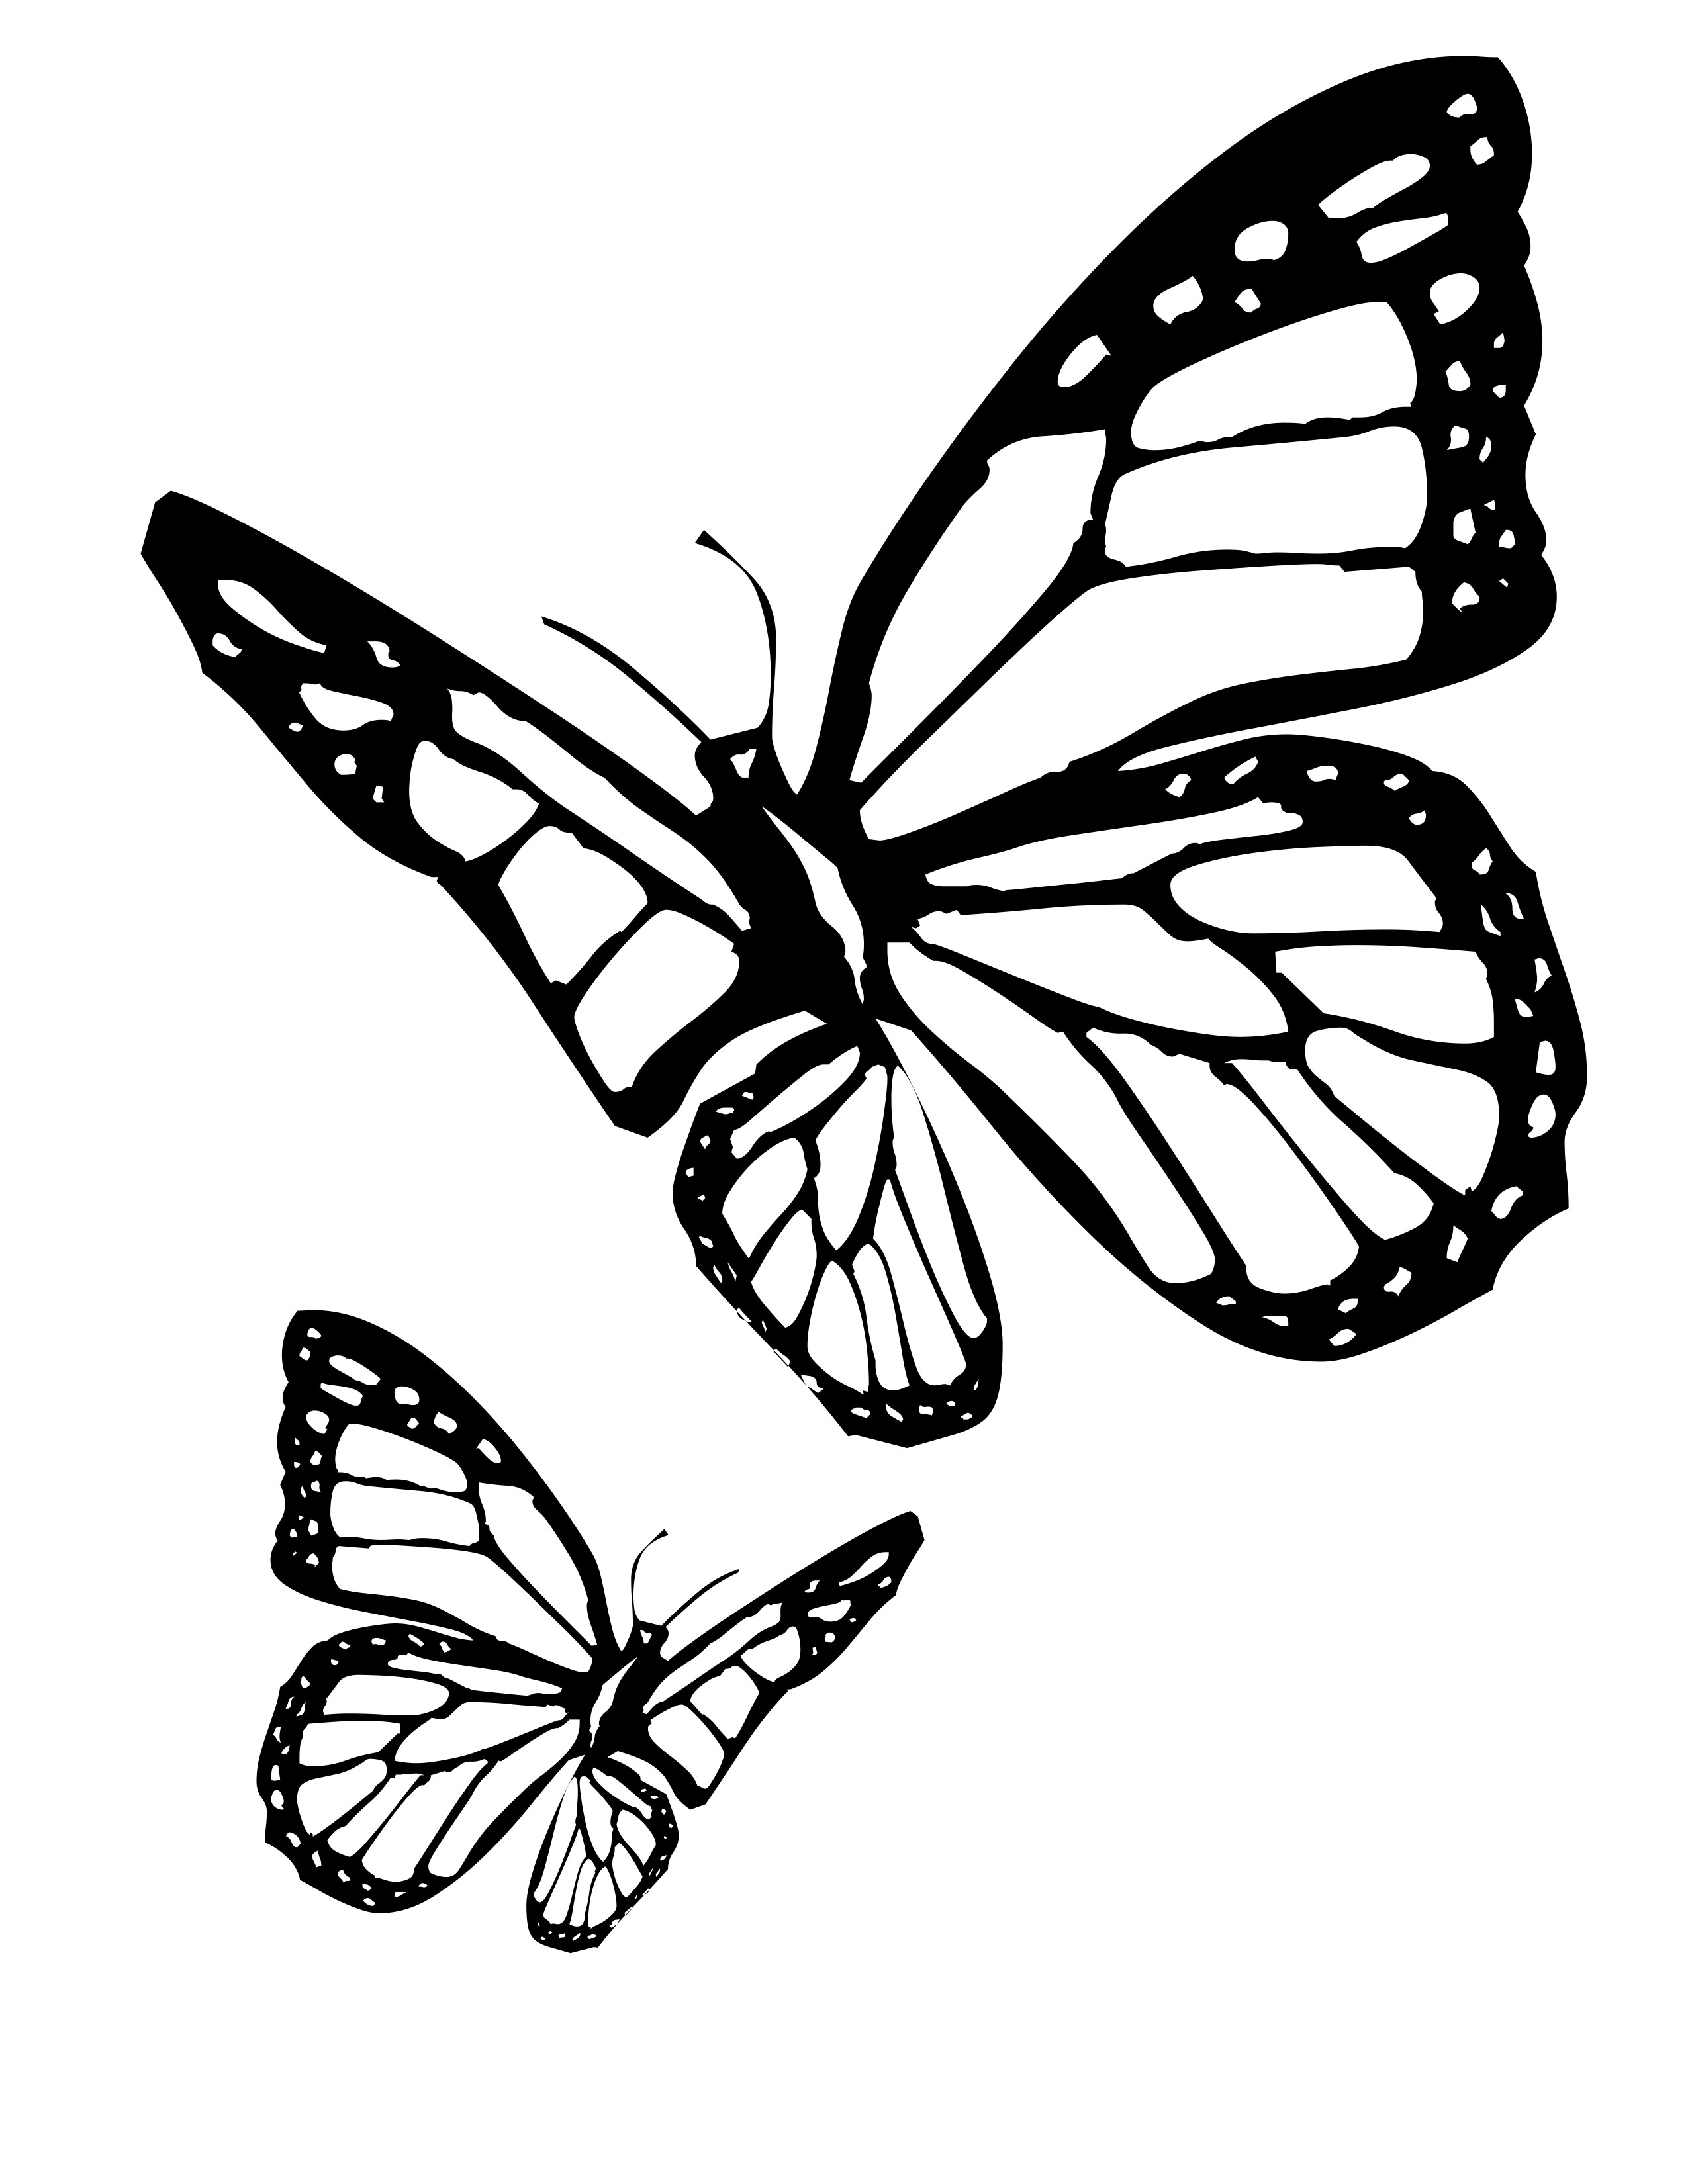 butterfly coloring pages free printable cute butterfly coloring pages for adults coloring home free printable butterfly pages coloring